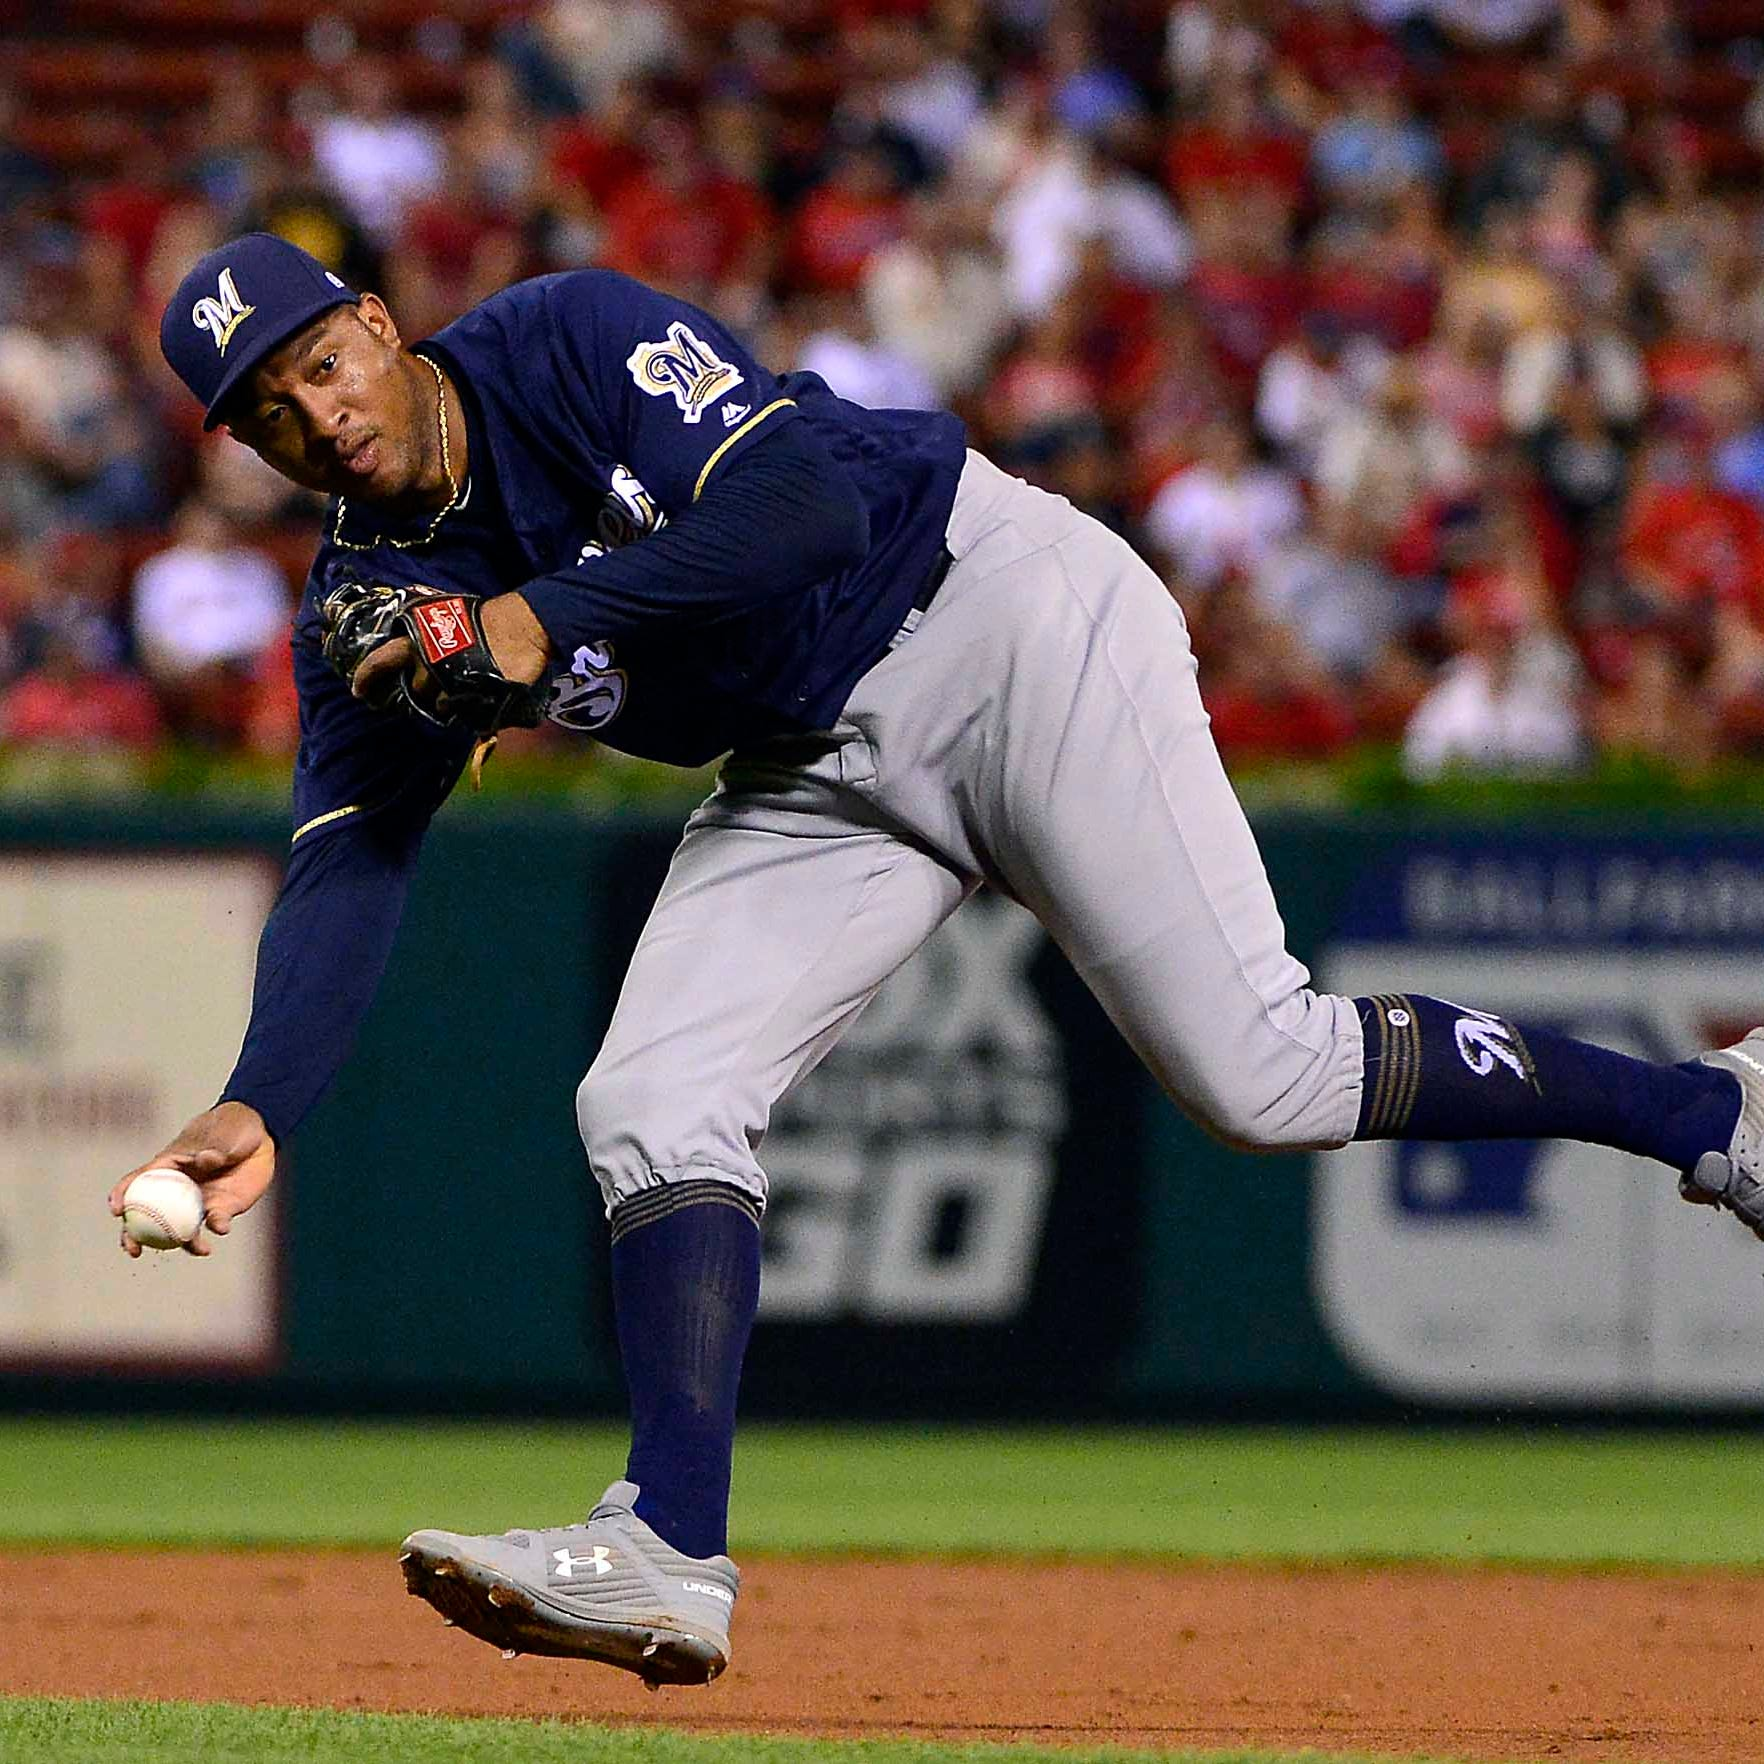 Brewers Podcast: Winter meetings arrive; will the Brewers pursue a second baseman?